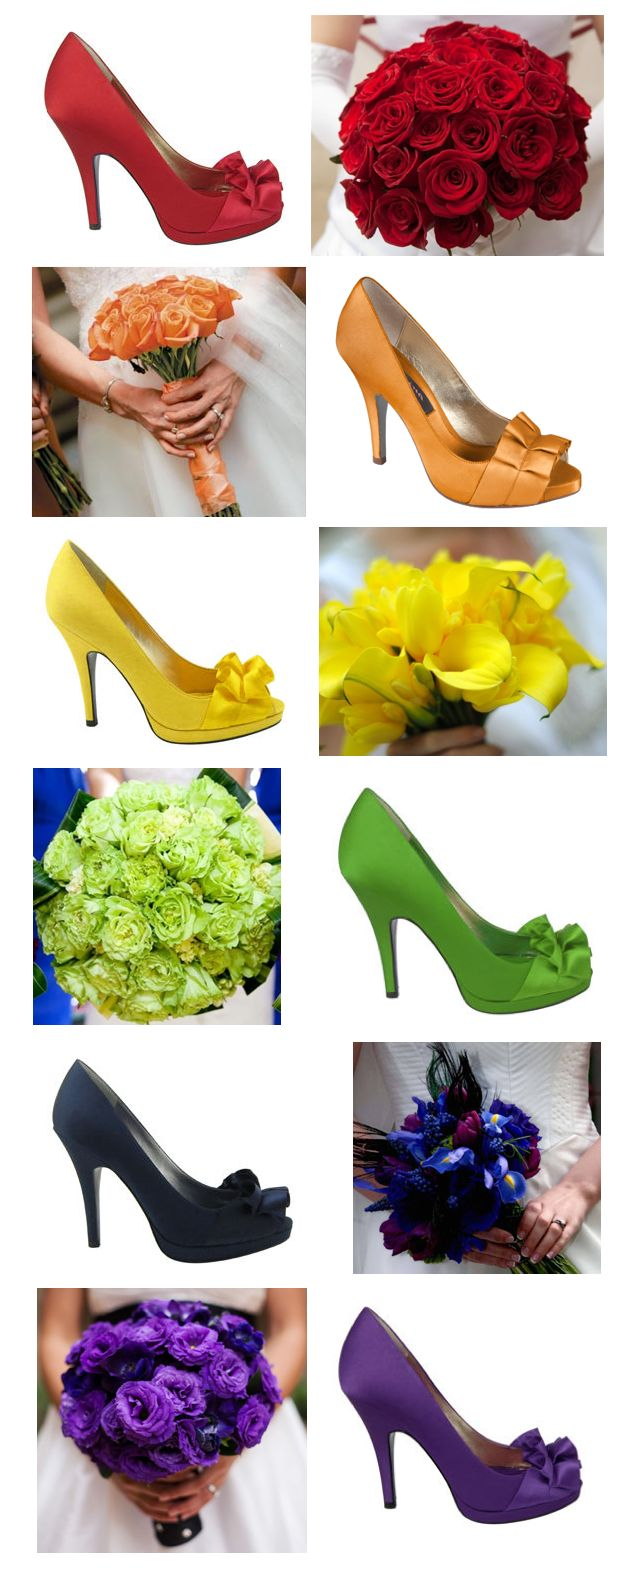 Shoes & bouquets!